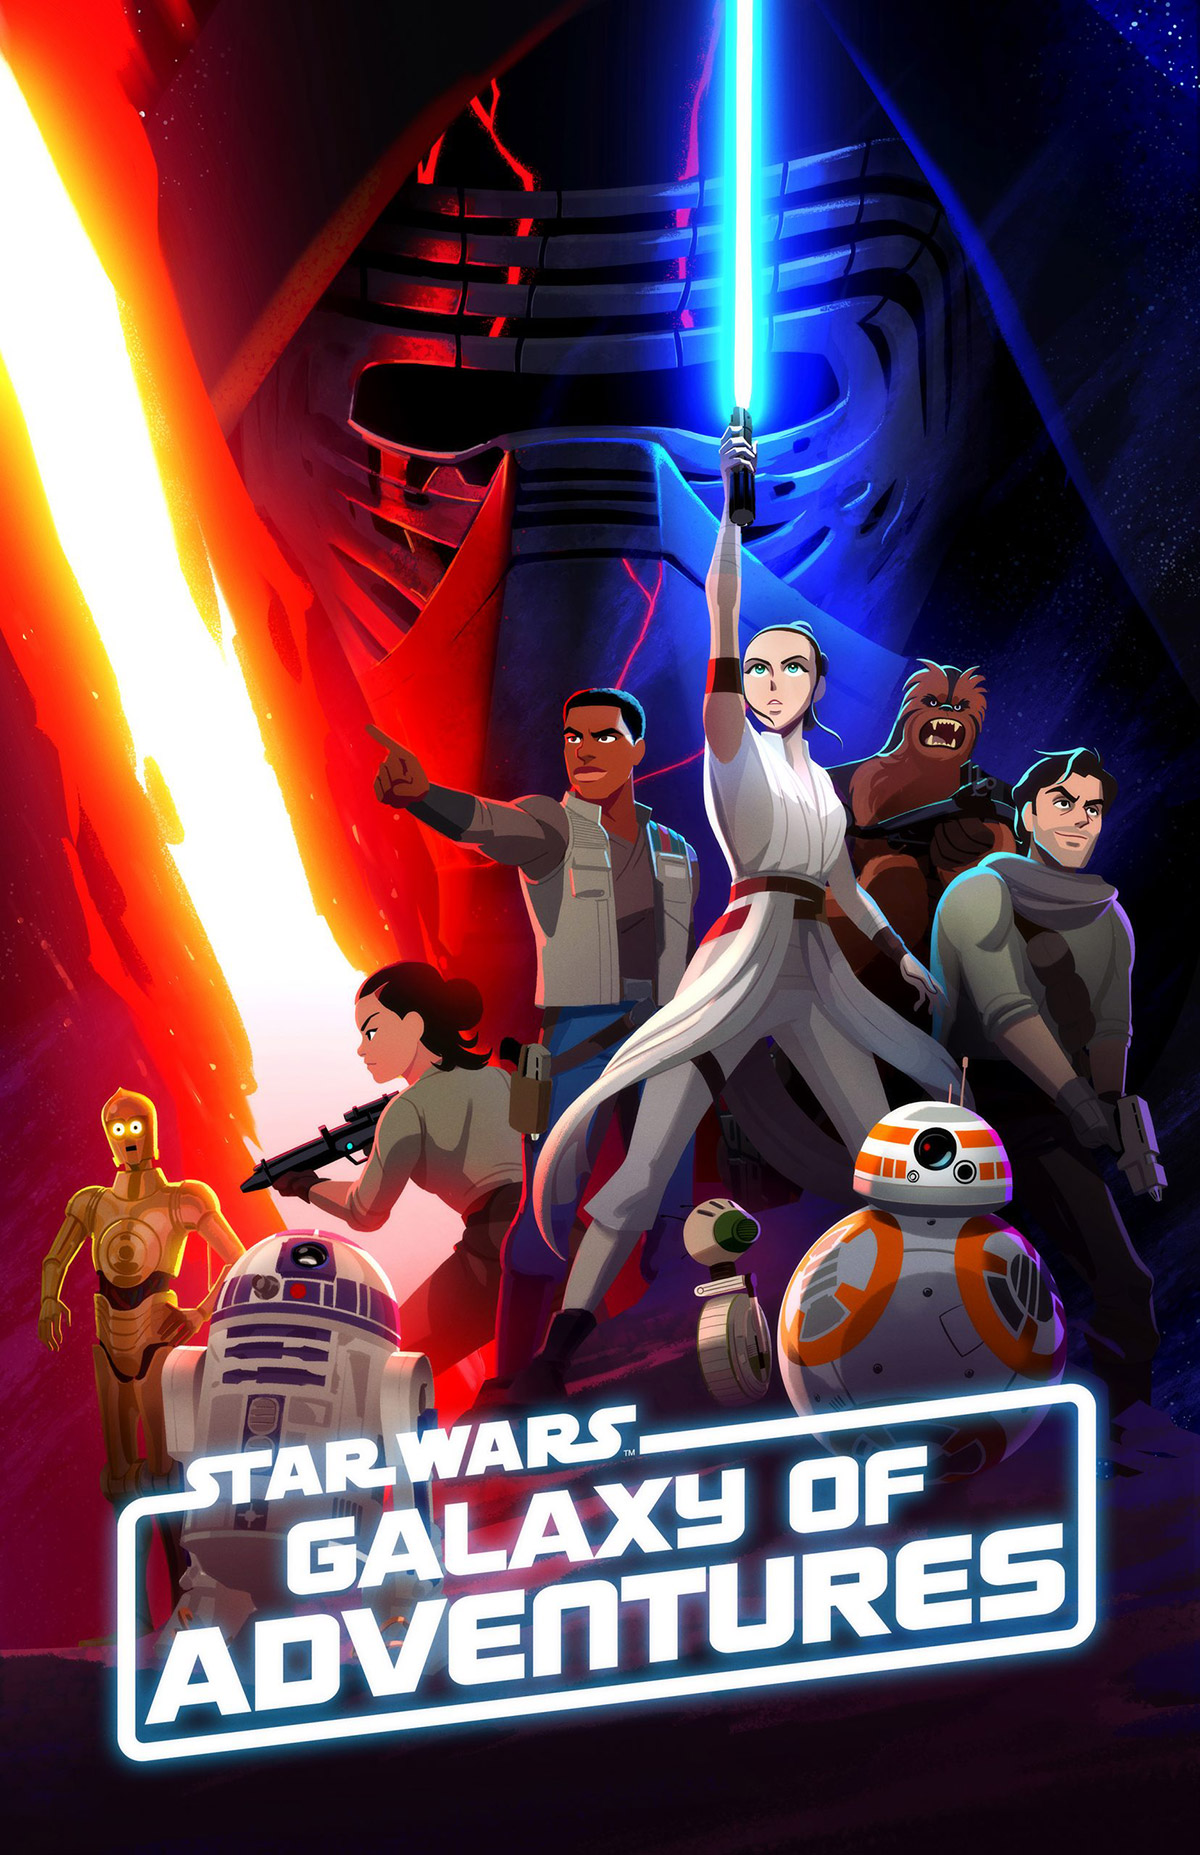 Star Wars: Galaxy of Adventures